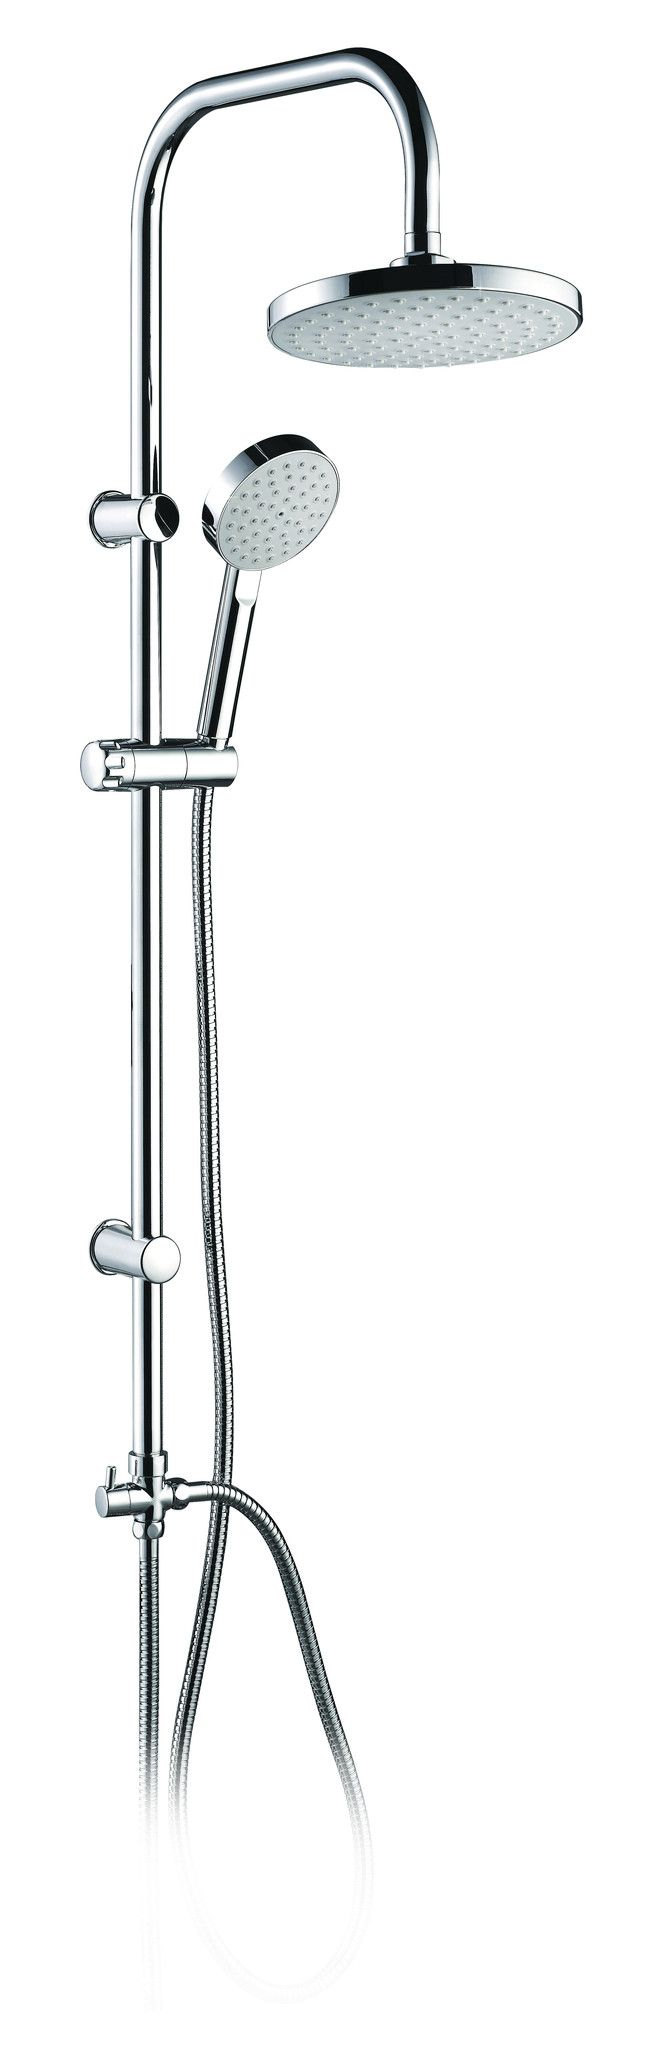 Miro Lago Shower System Column W/ Shower Head & Hand Held shower Polished Chrome